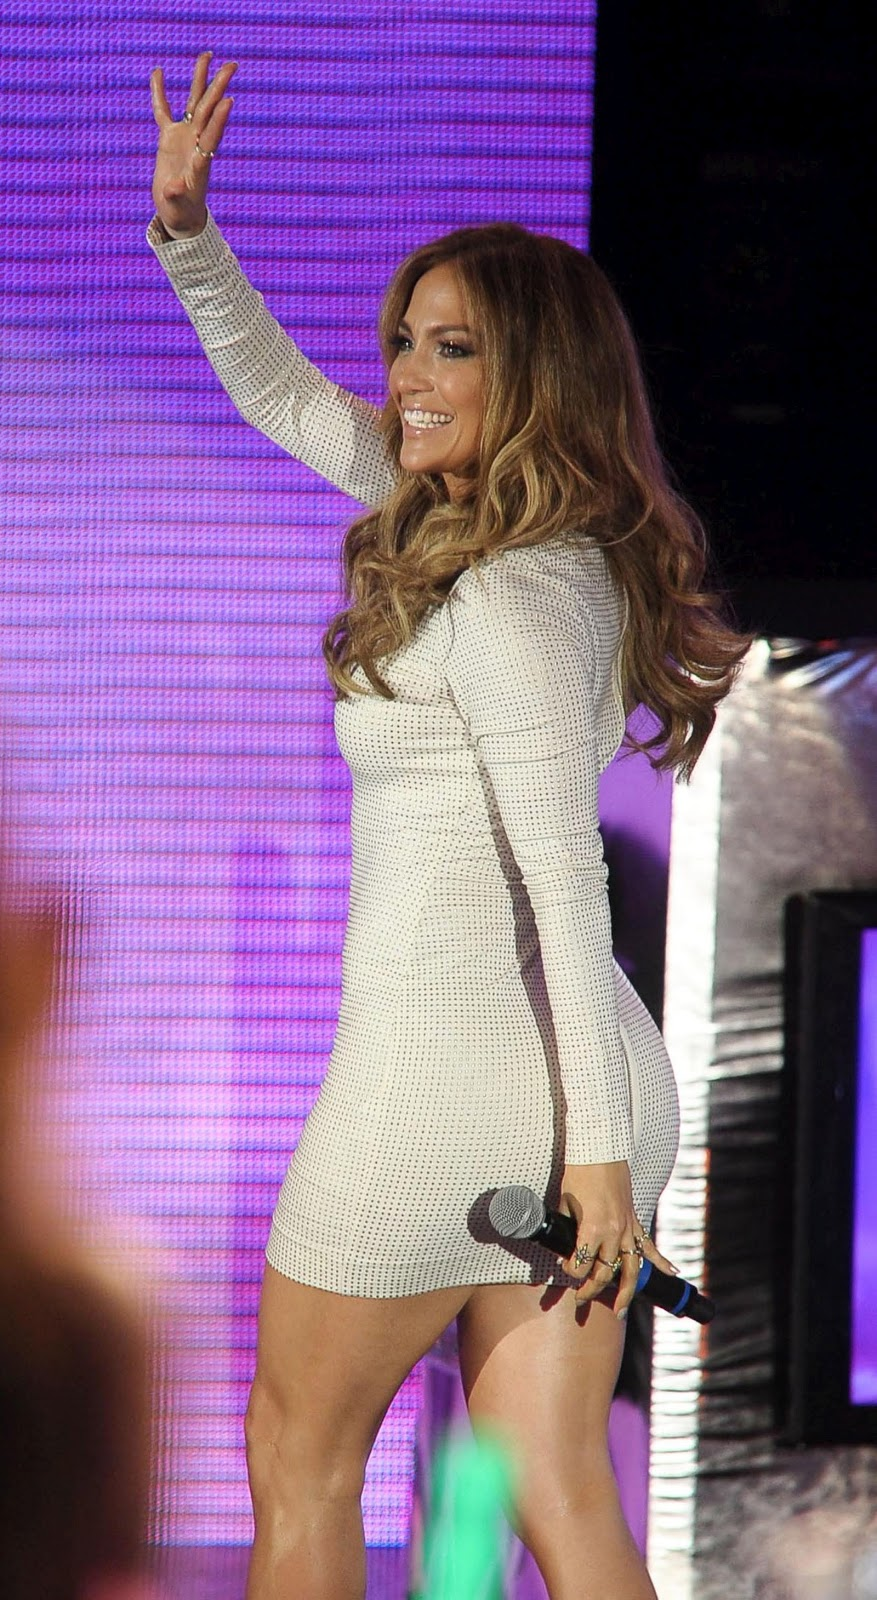 High Quality Bollywood Celebrity Pictures Jennifer Lopez -8729